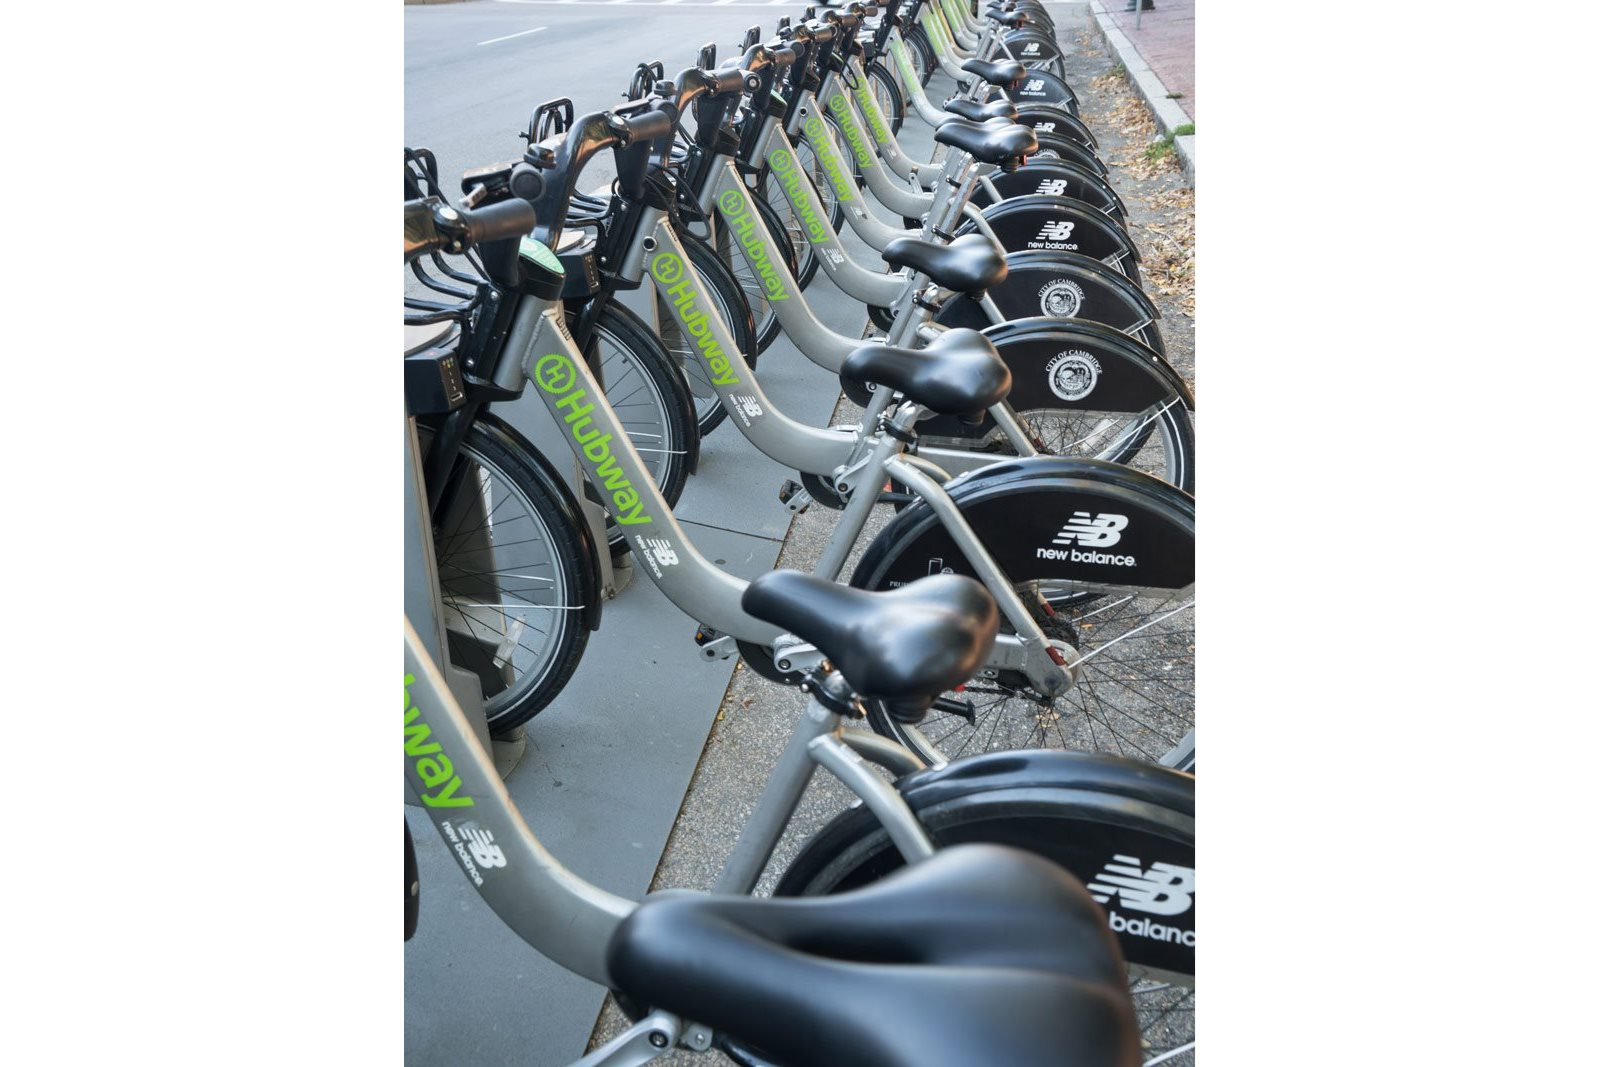 Hubway Bike Share at Vox on Two, 223 Concord Turnpike, Cambridge